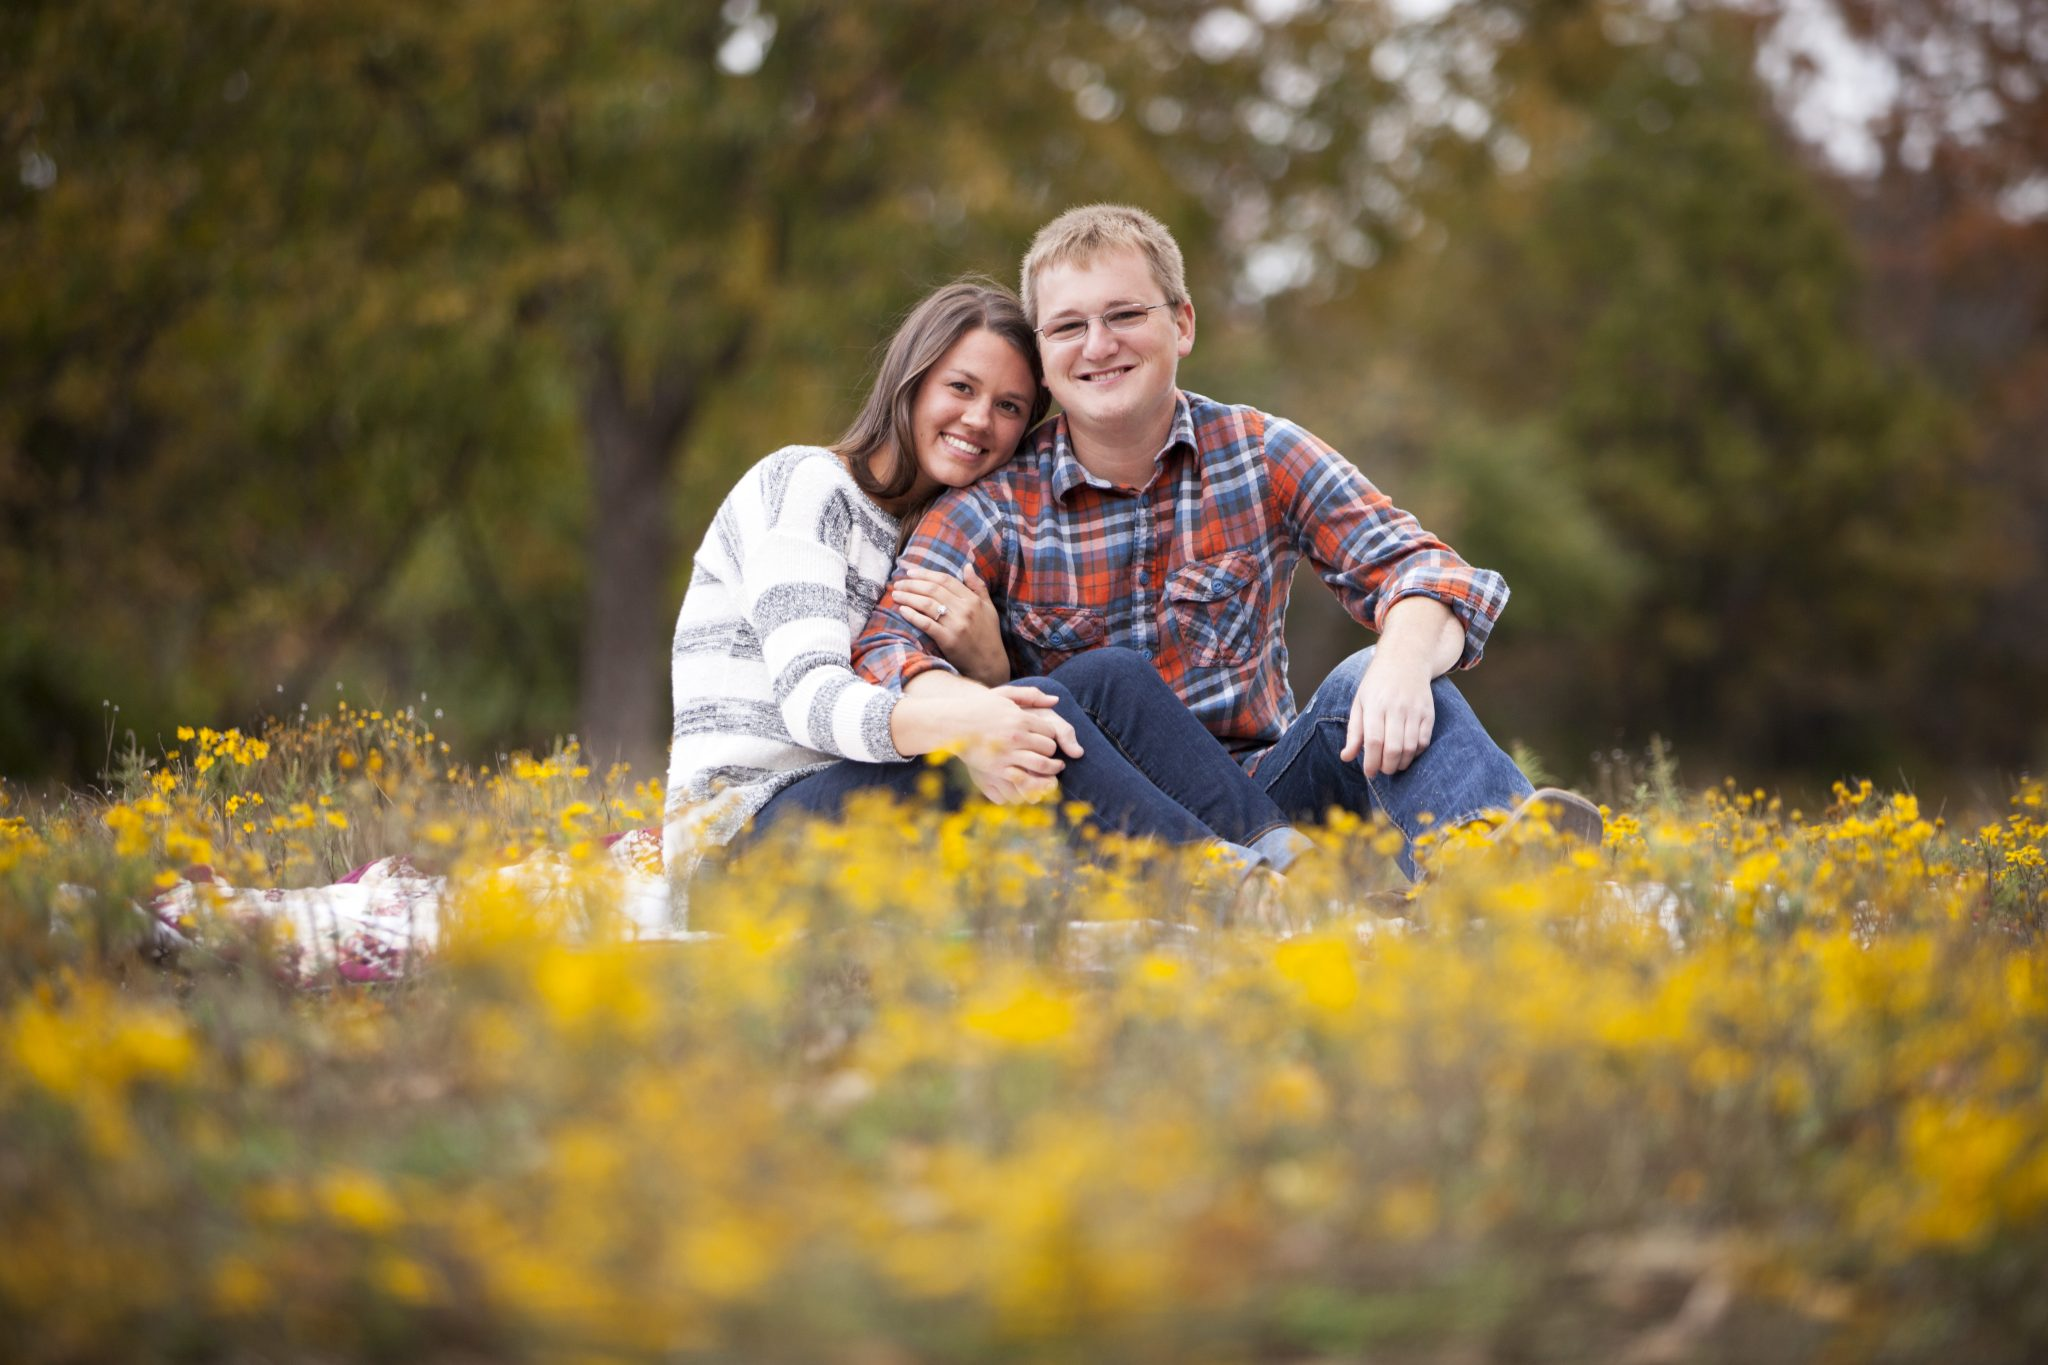 Bailey & Chris ~ Engagement and Wedding Photographers in Tulsa, OK